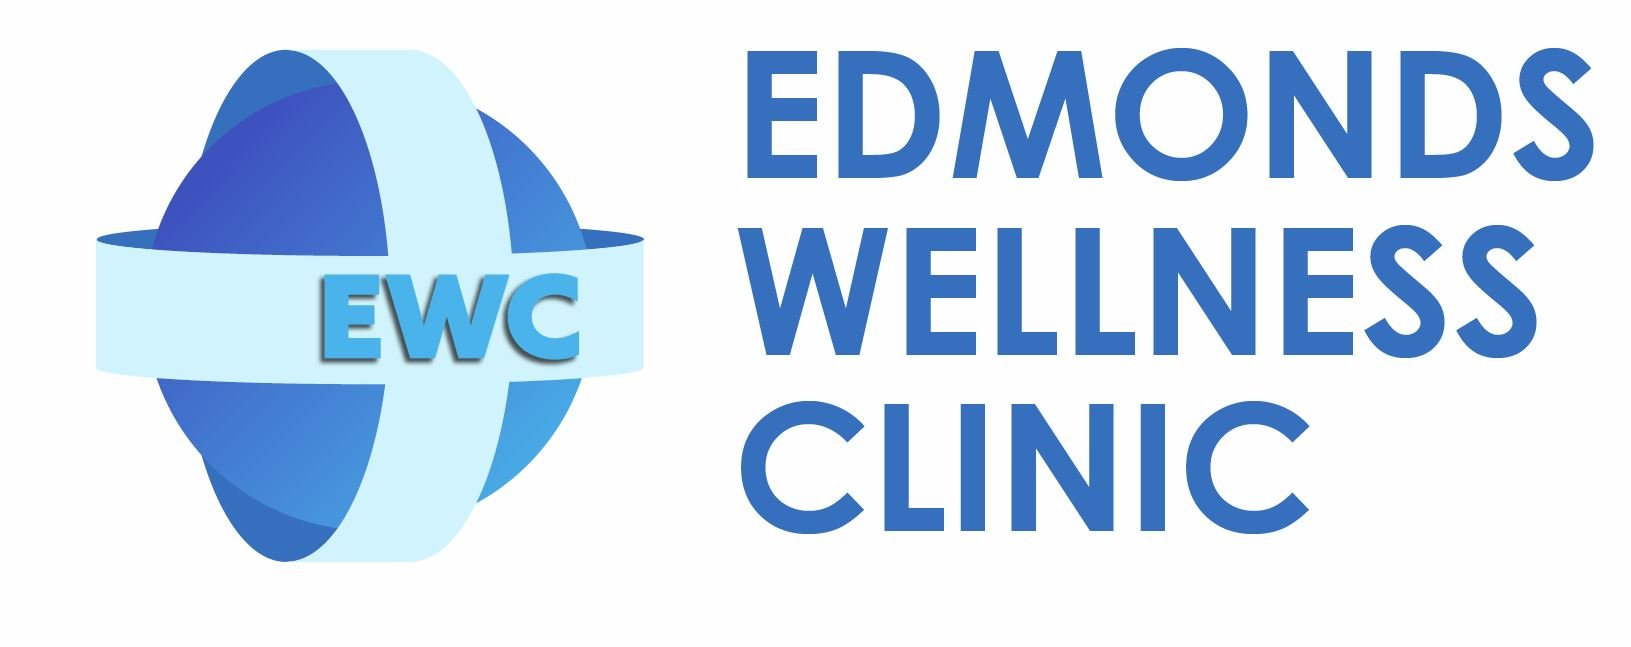 Edmonds Wellness Clinic